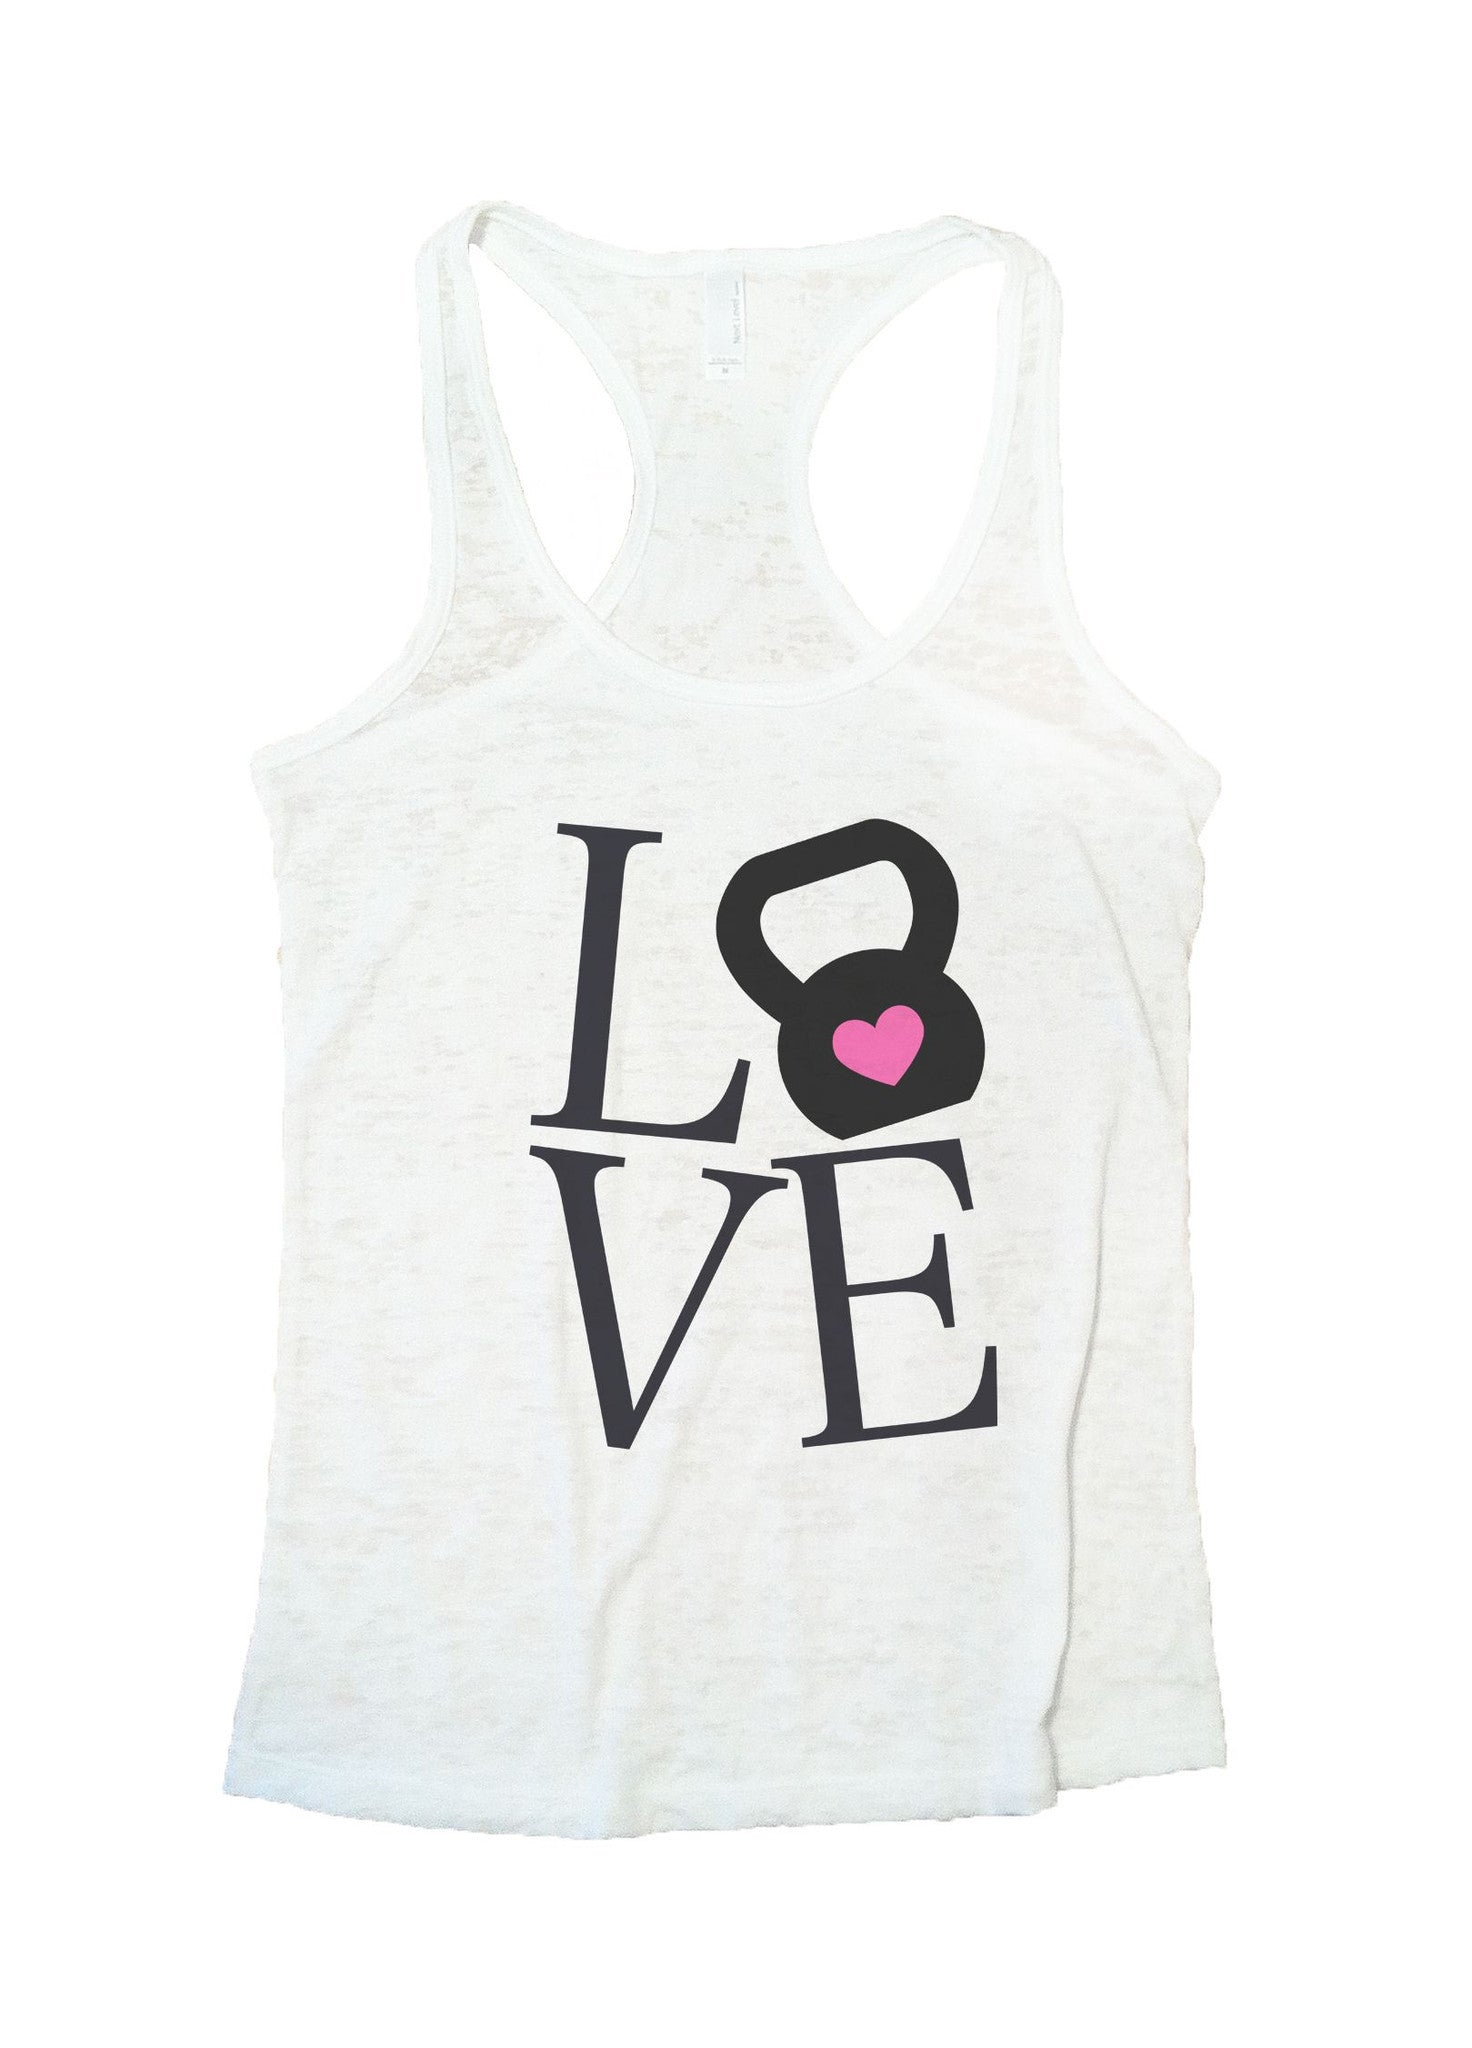 Love Burnout Tank Top By BurnoutTankTops.com - 727 - Funny Shirts Tank Tops Burnouts and Triblends  - 5